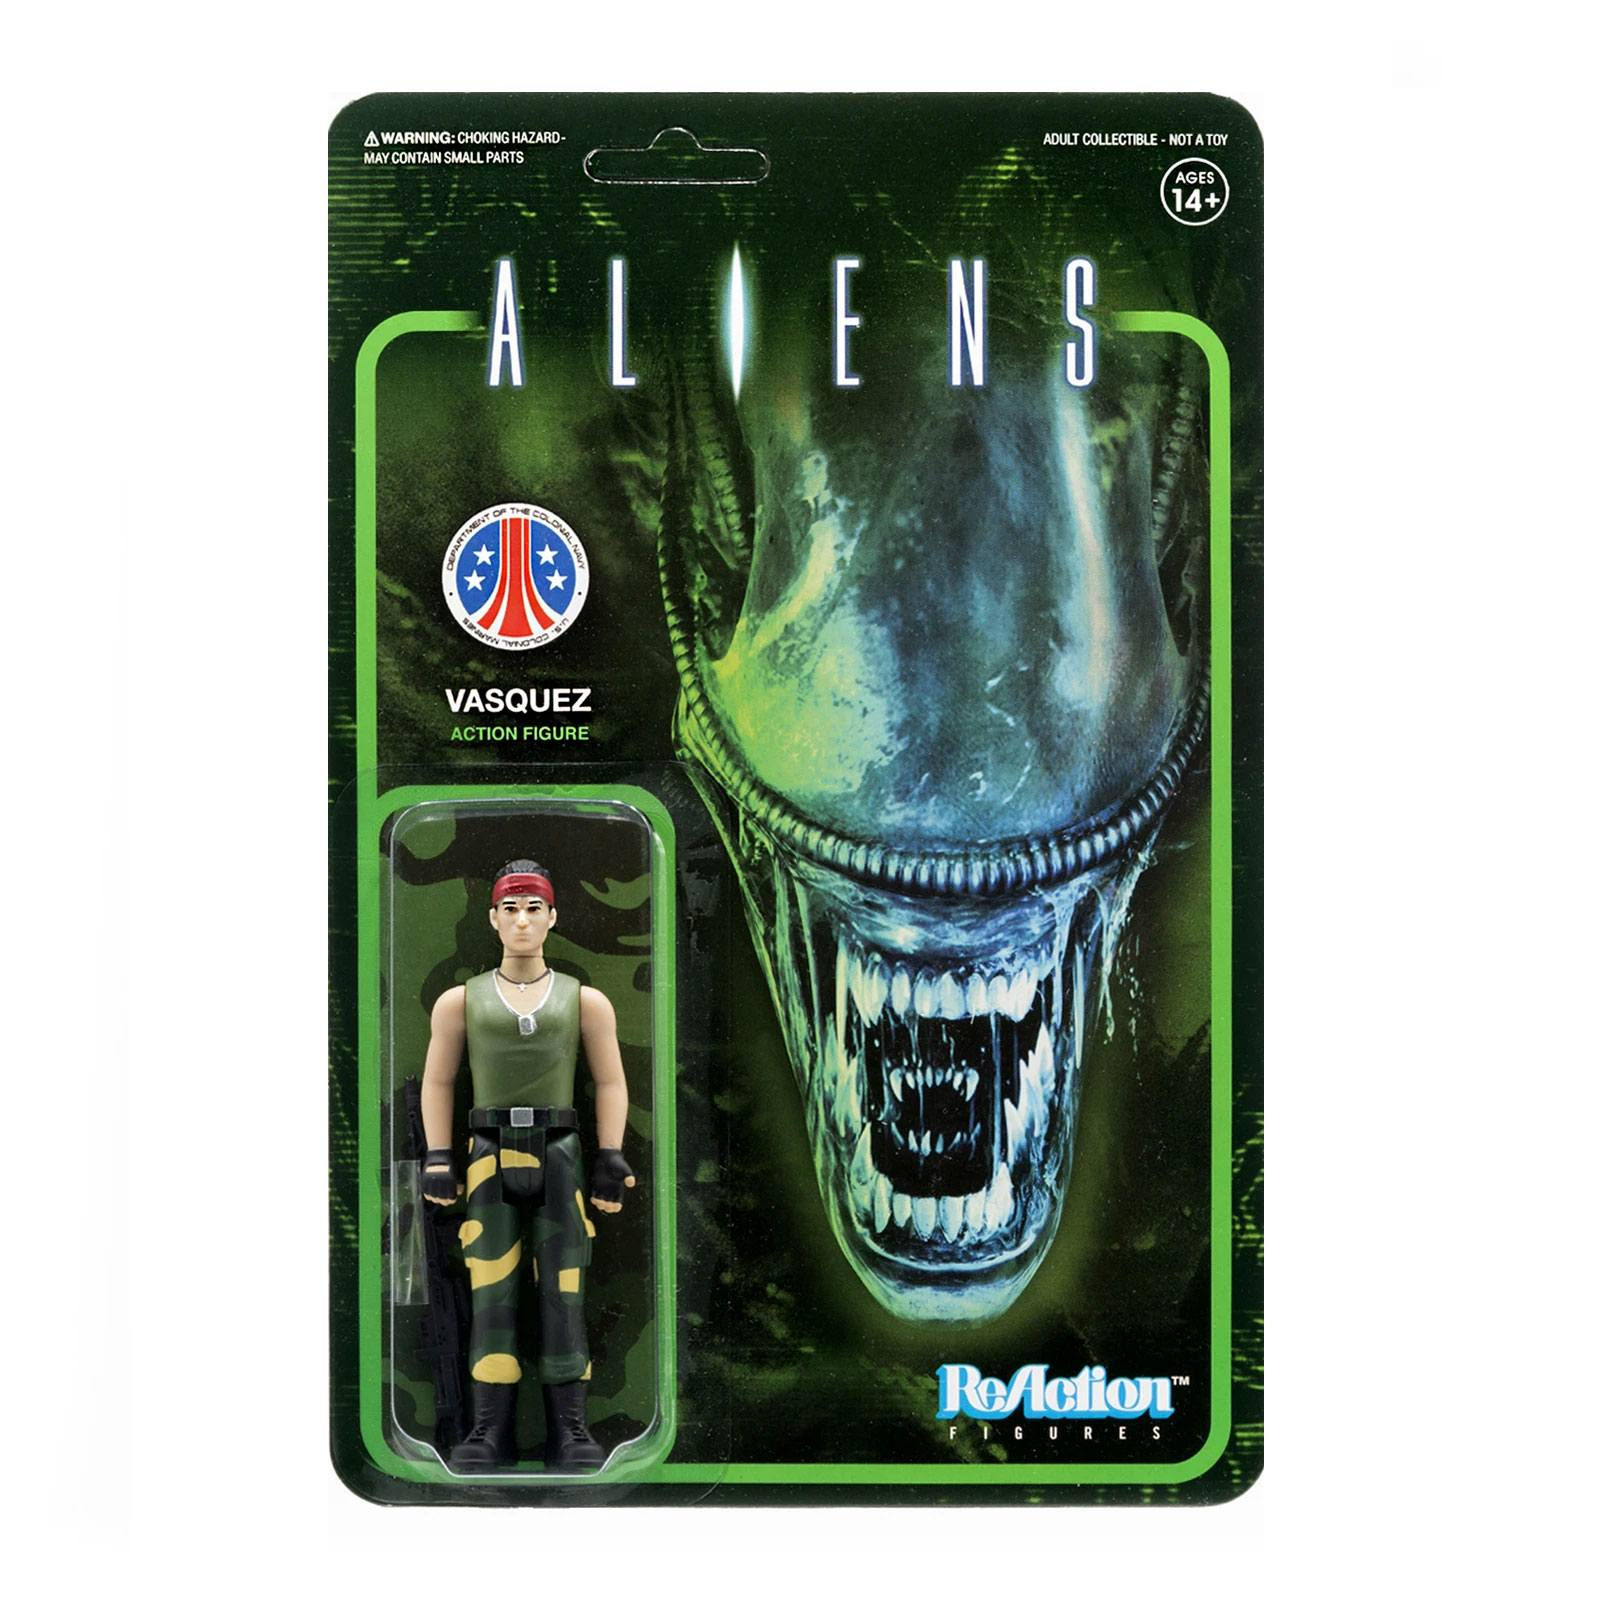 Photo du produit ALIENS WAVE 1 FIGURINE REACTION VASQUEZ 10 CM - SUPER7